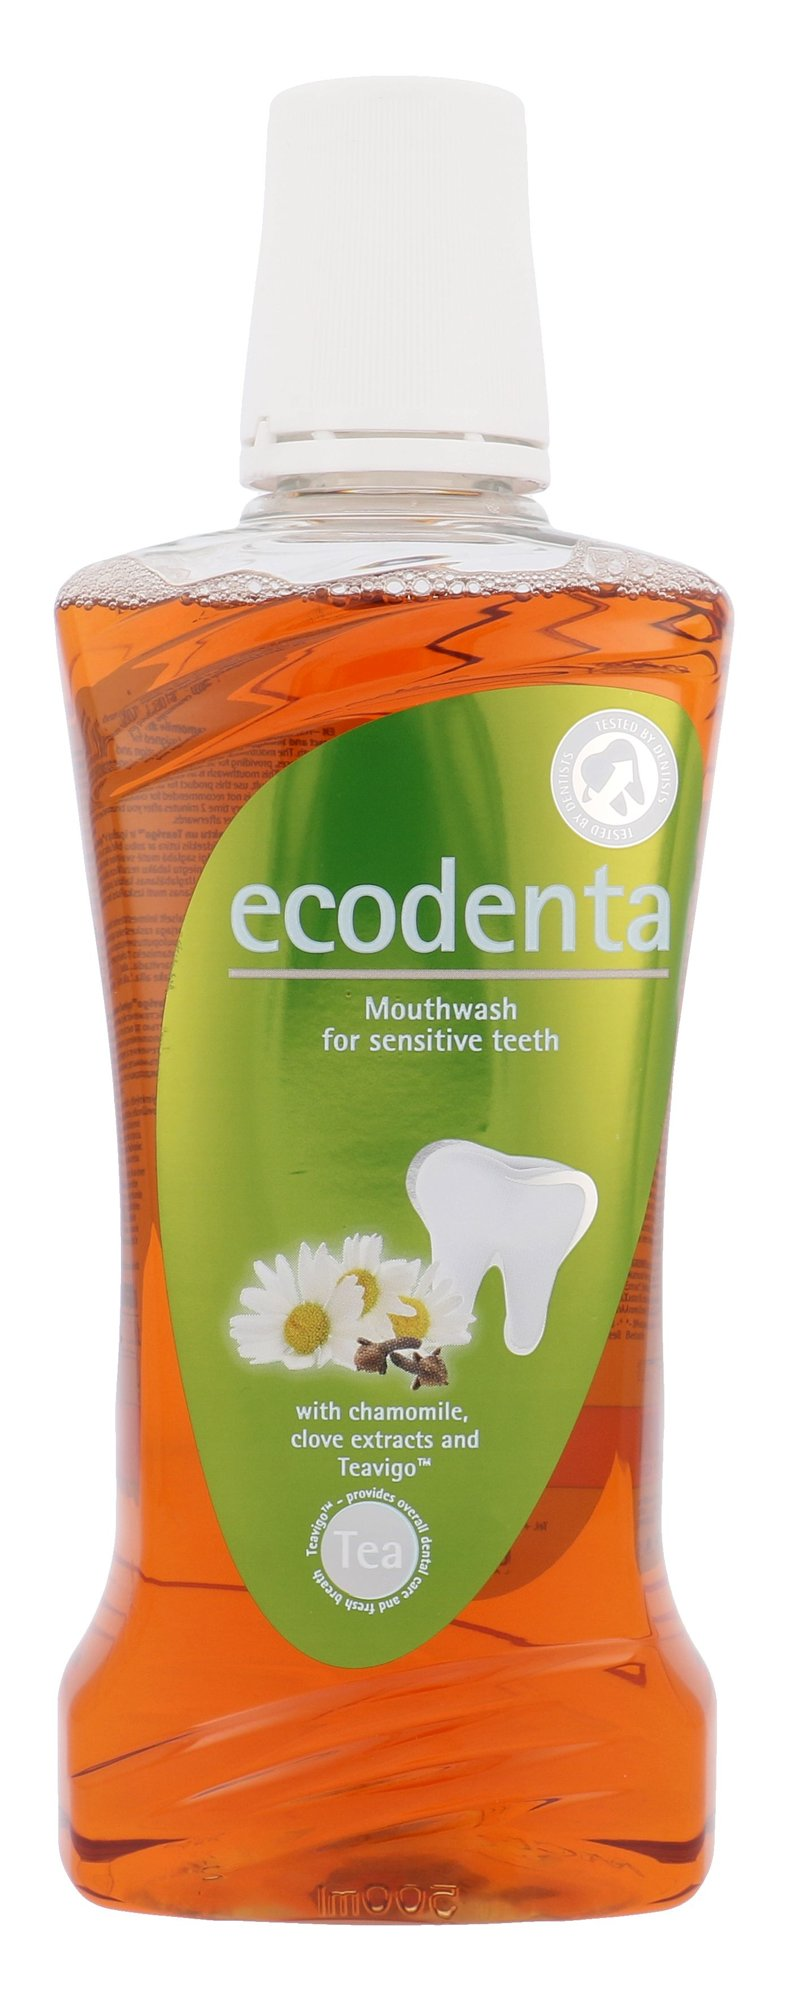 Ecodenta Mouthwash For Sensitive Teeth Cosmetic 480ml